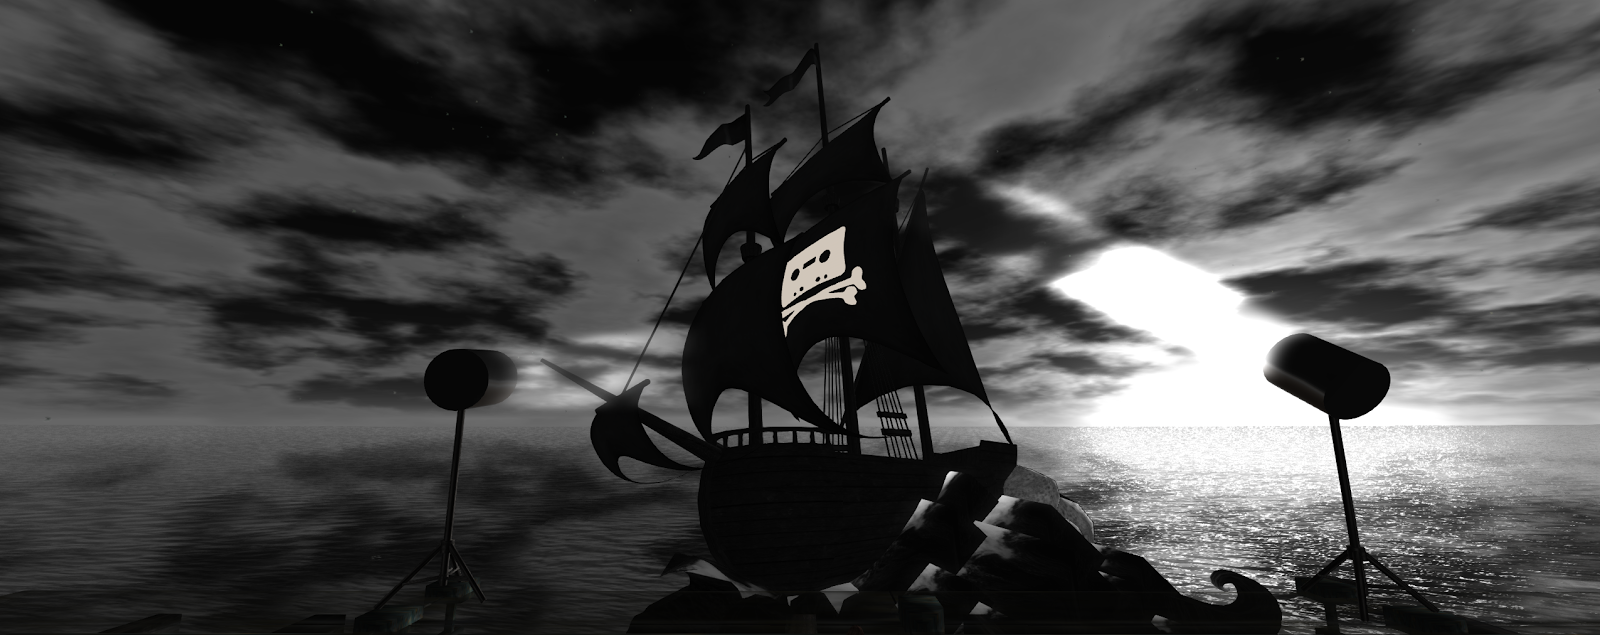 the pirate bay tpb legal issues World's best torrent site the pirate bay is down again while its nothing new for the tpb facing down time this week the website has reportedly been facing server issues several times.